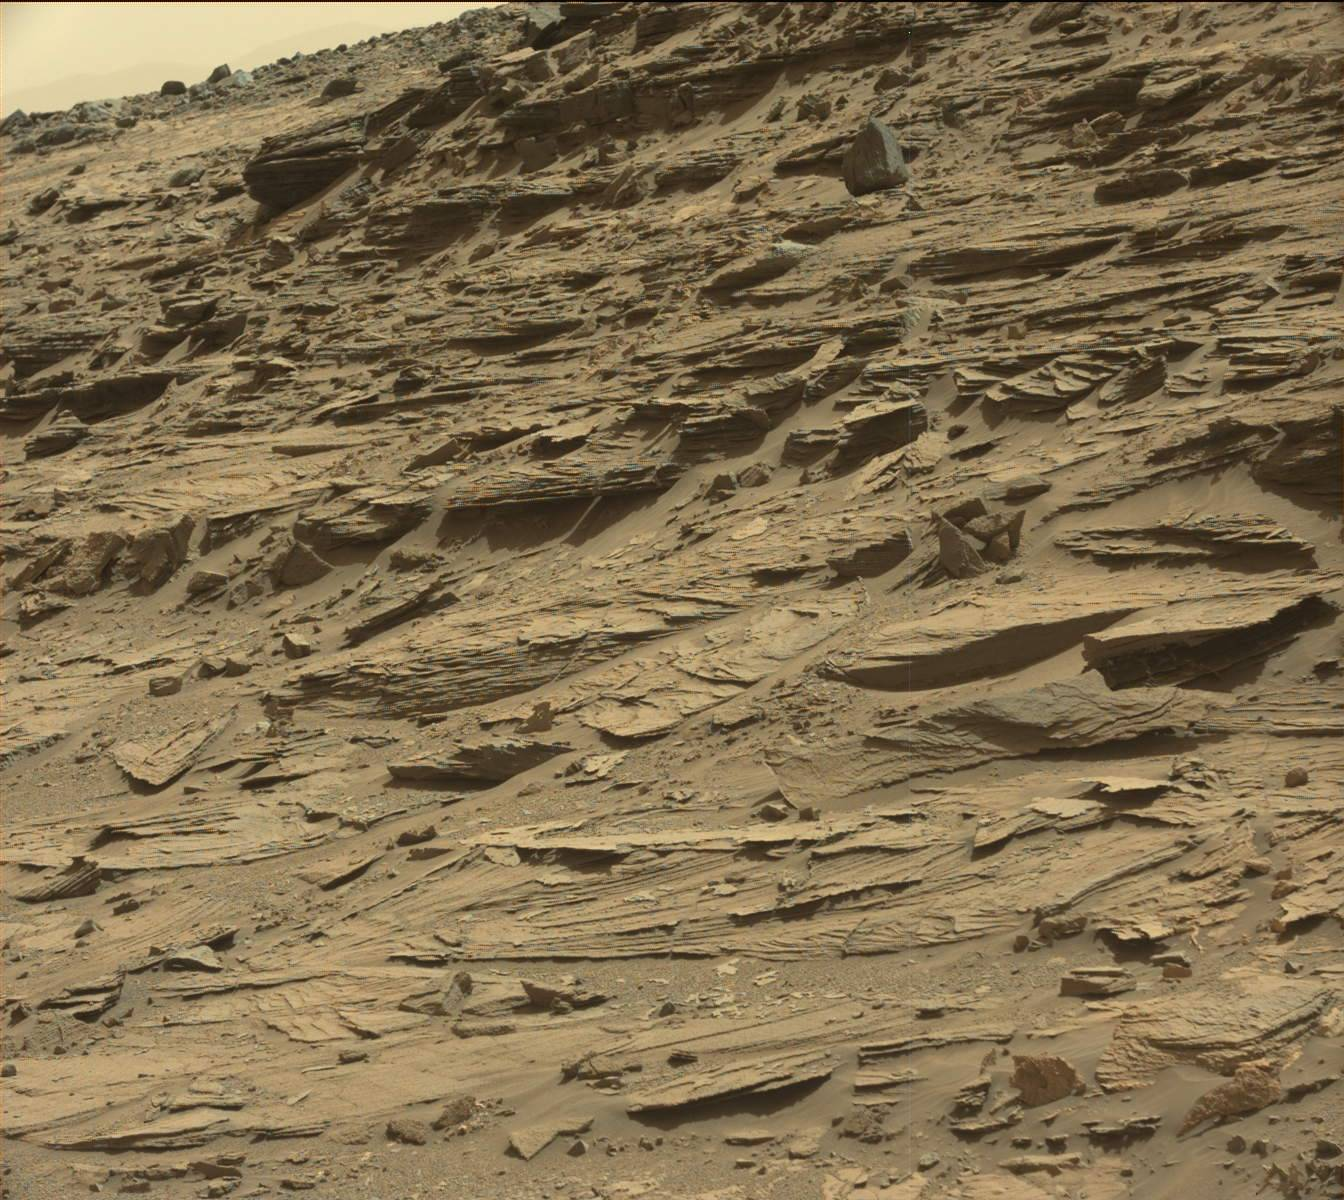 Rocket Cone on Mars and other anomalies: Retro Sol 1067 ...